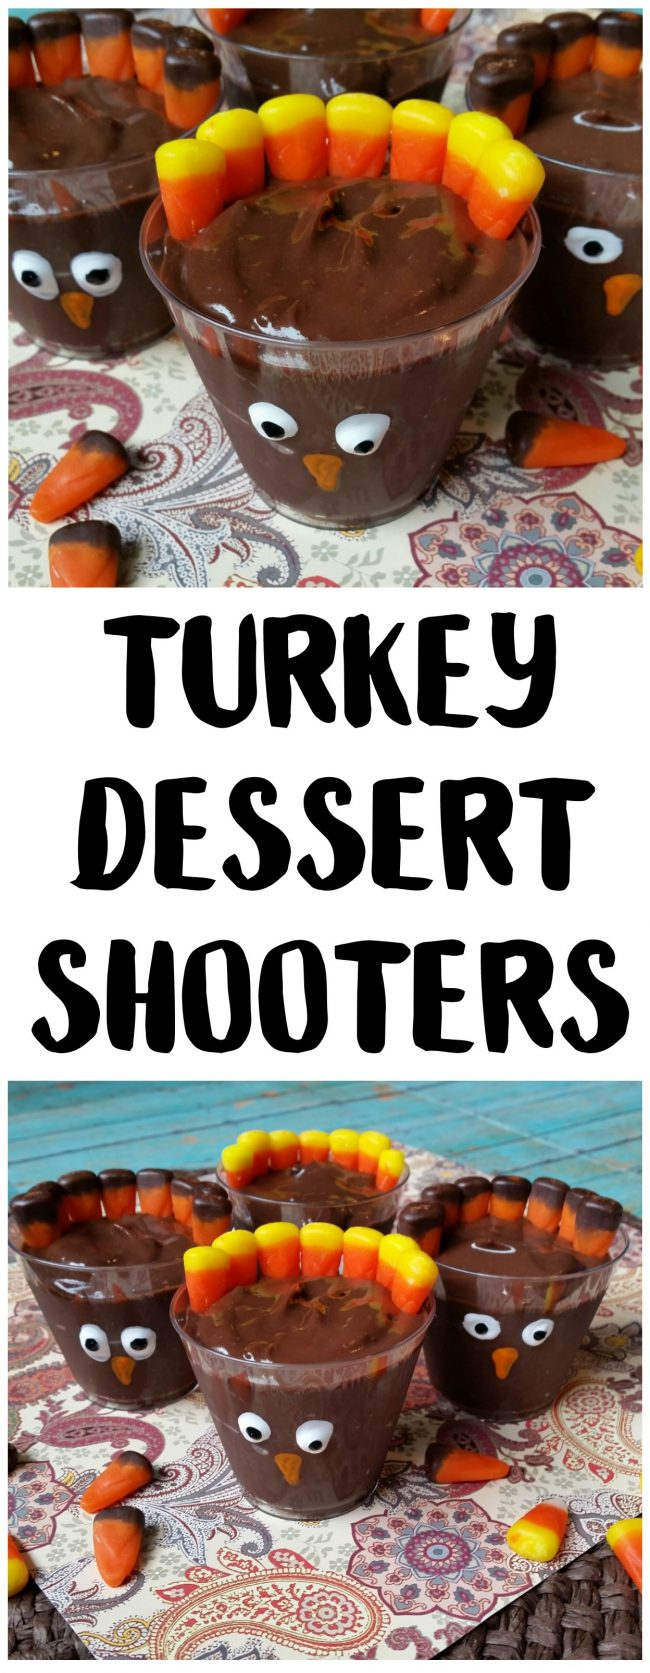 Need a fun and unique Thanksgiving dessert idea beyond Pumpkin Pie or Apple Pie? Check out these Turkey Dessert Shooters! They are super easy to make and so much fun to eat!